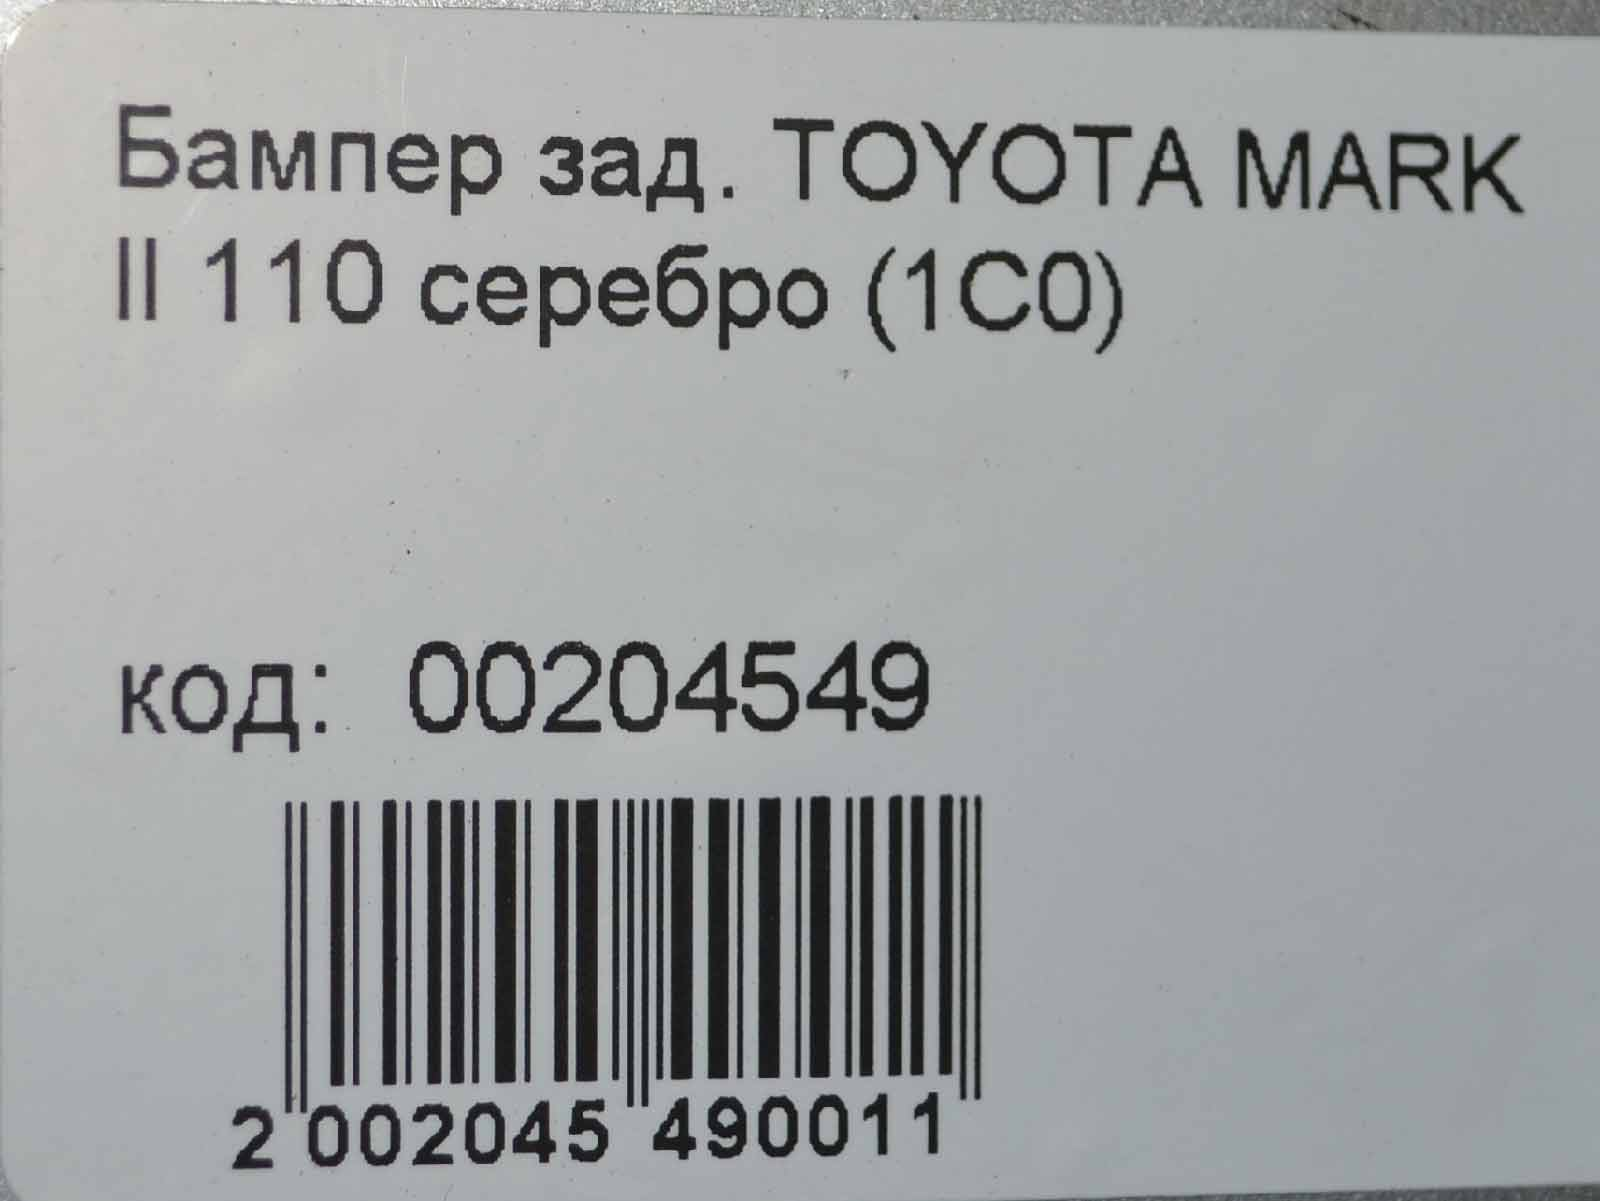 Бампер задний TOYOTA MARK II 110 серебро (1С0) 2